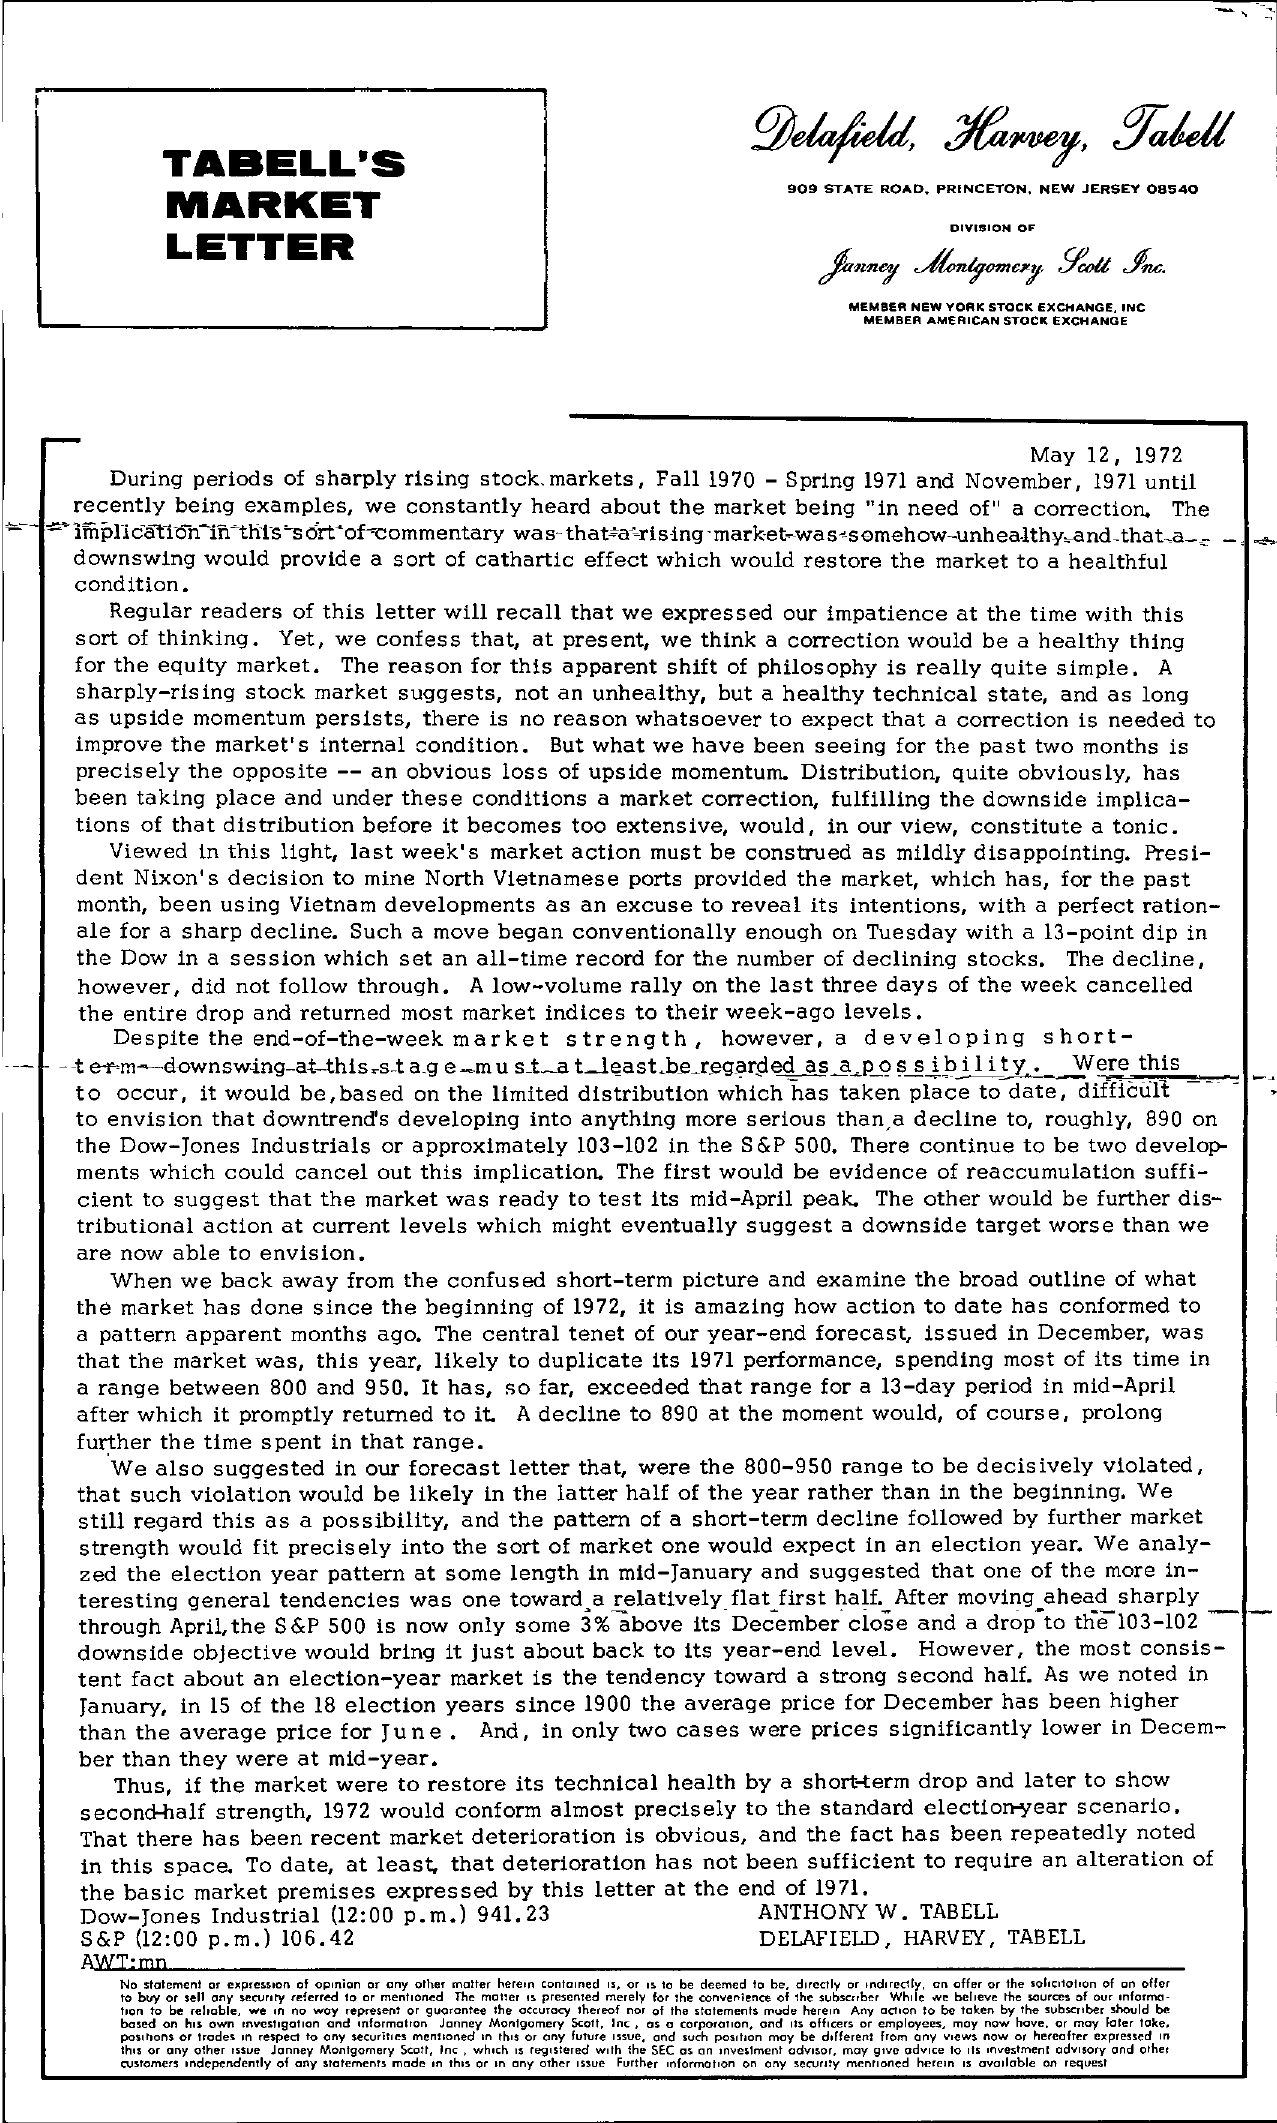 Tabell's Market Letter - May 12, 1972